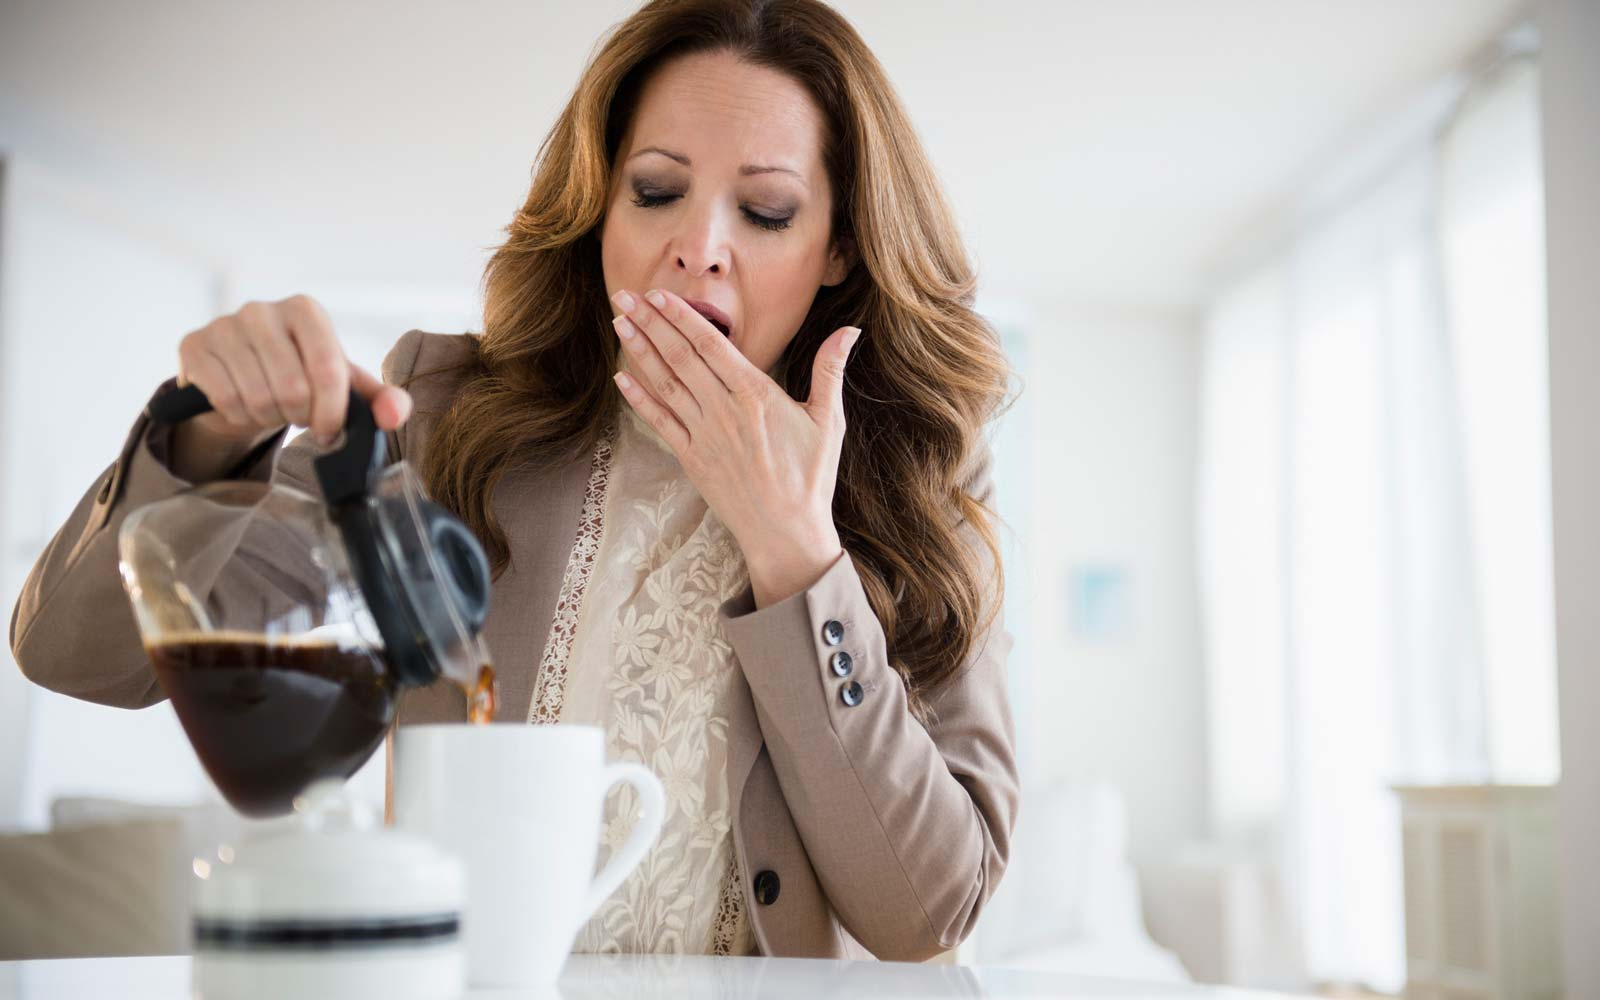 7 mistakes you make after you wake up that ruin your day